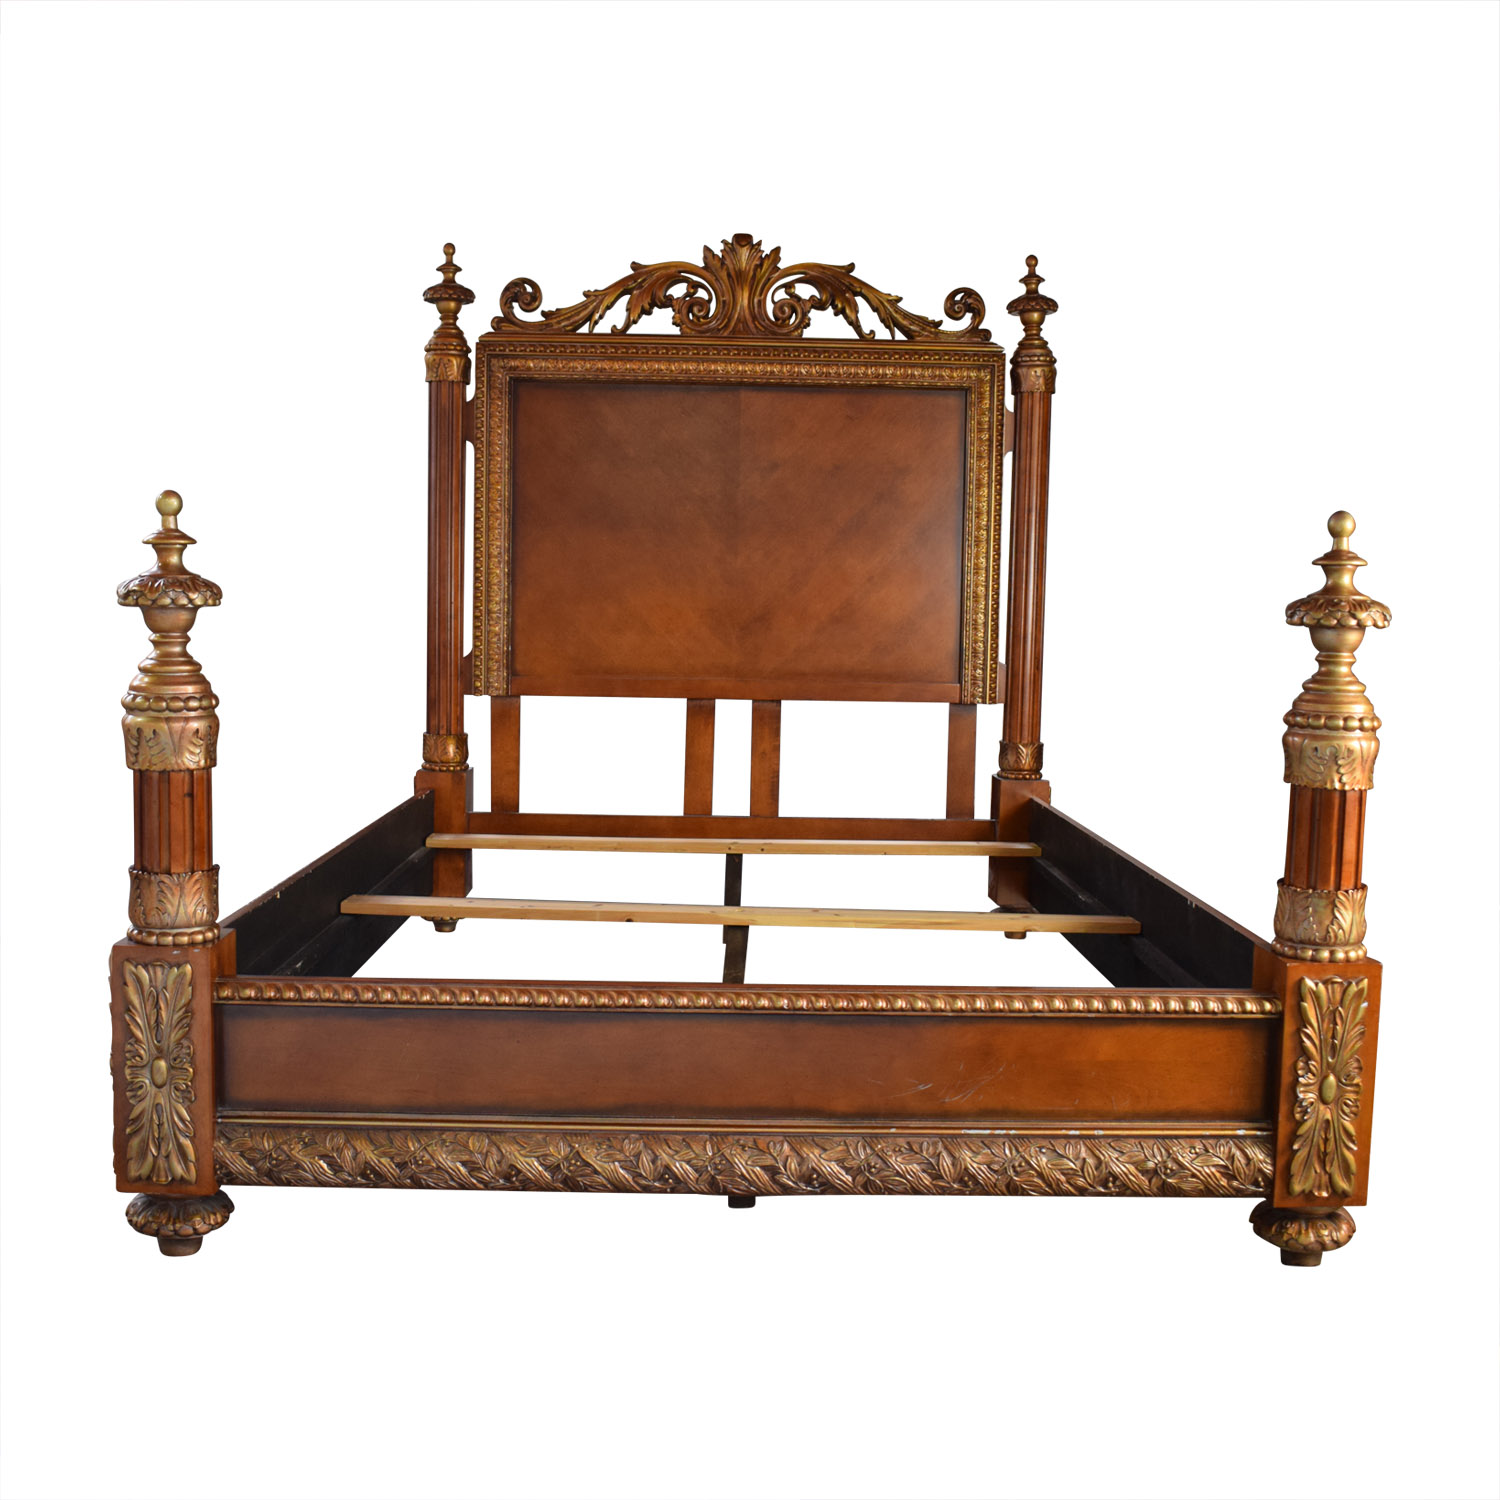 reputable site af02c b7916 82% OFF - Horchow Horchow Carved Wood Semi-Four Poster Queen Bed Frame /  Beds